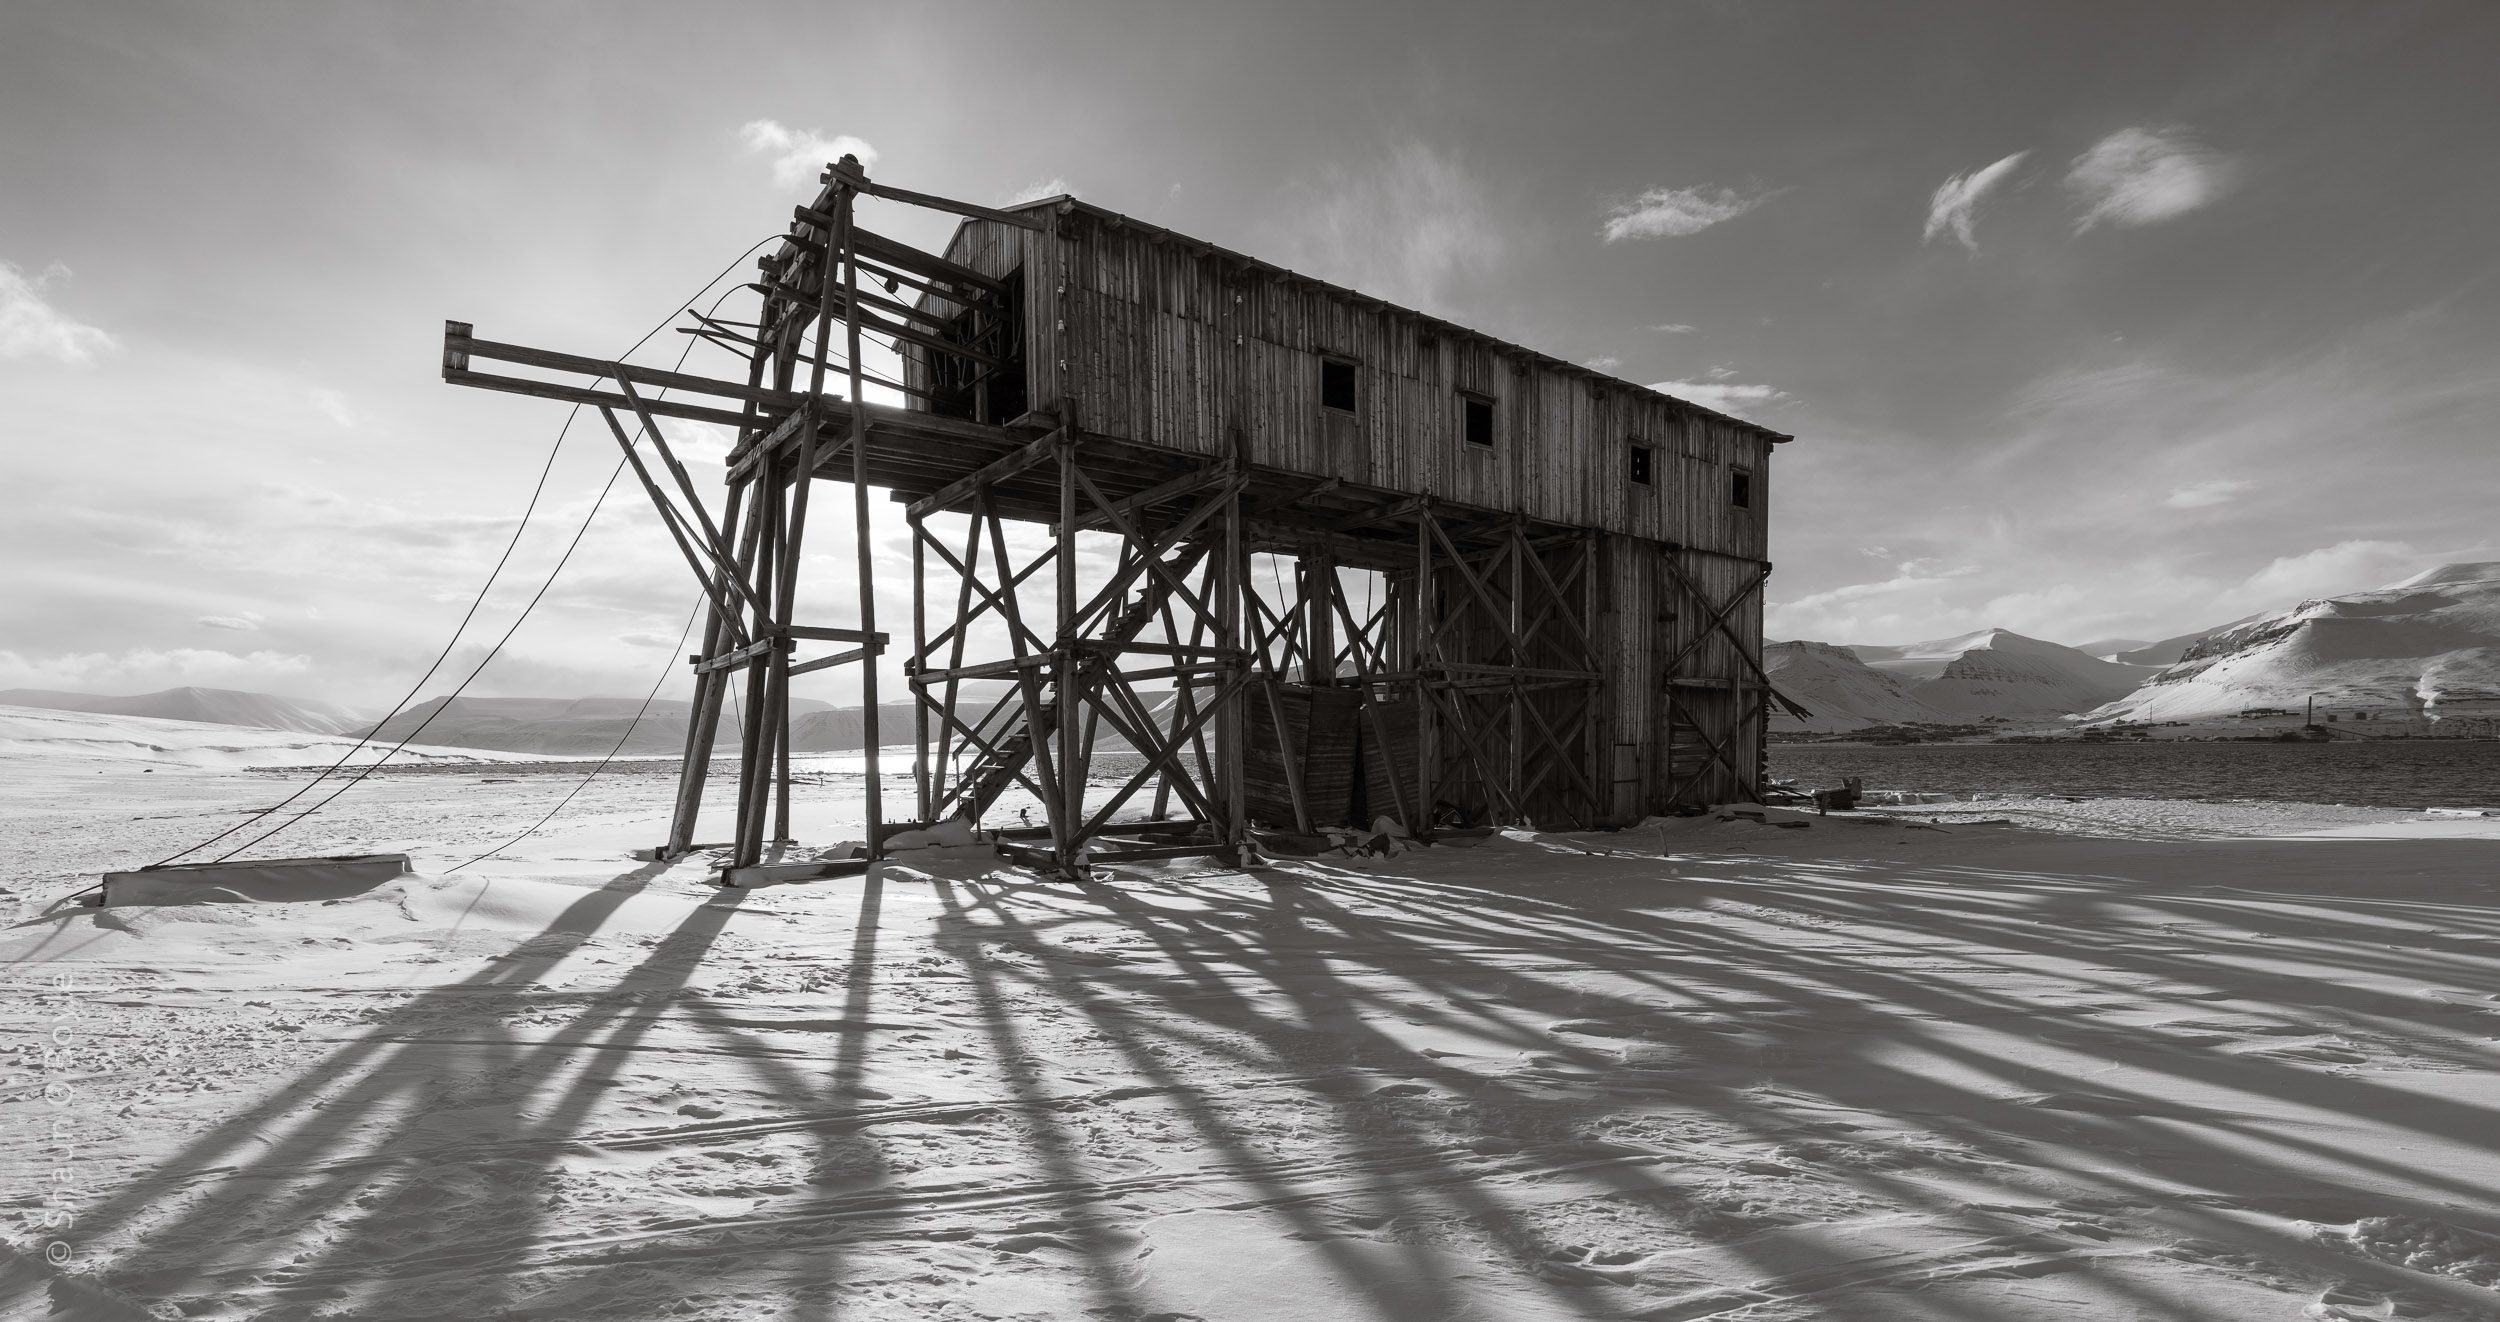 Early 1900's Coal Cableway station at Hiorthamn, Spitsbergen